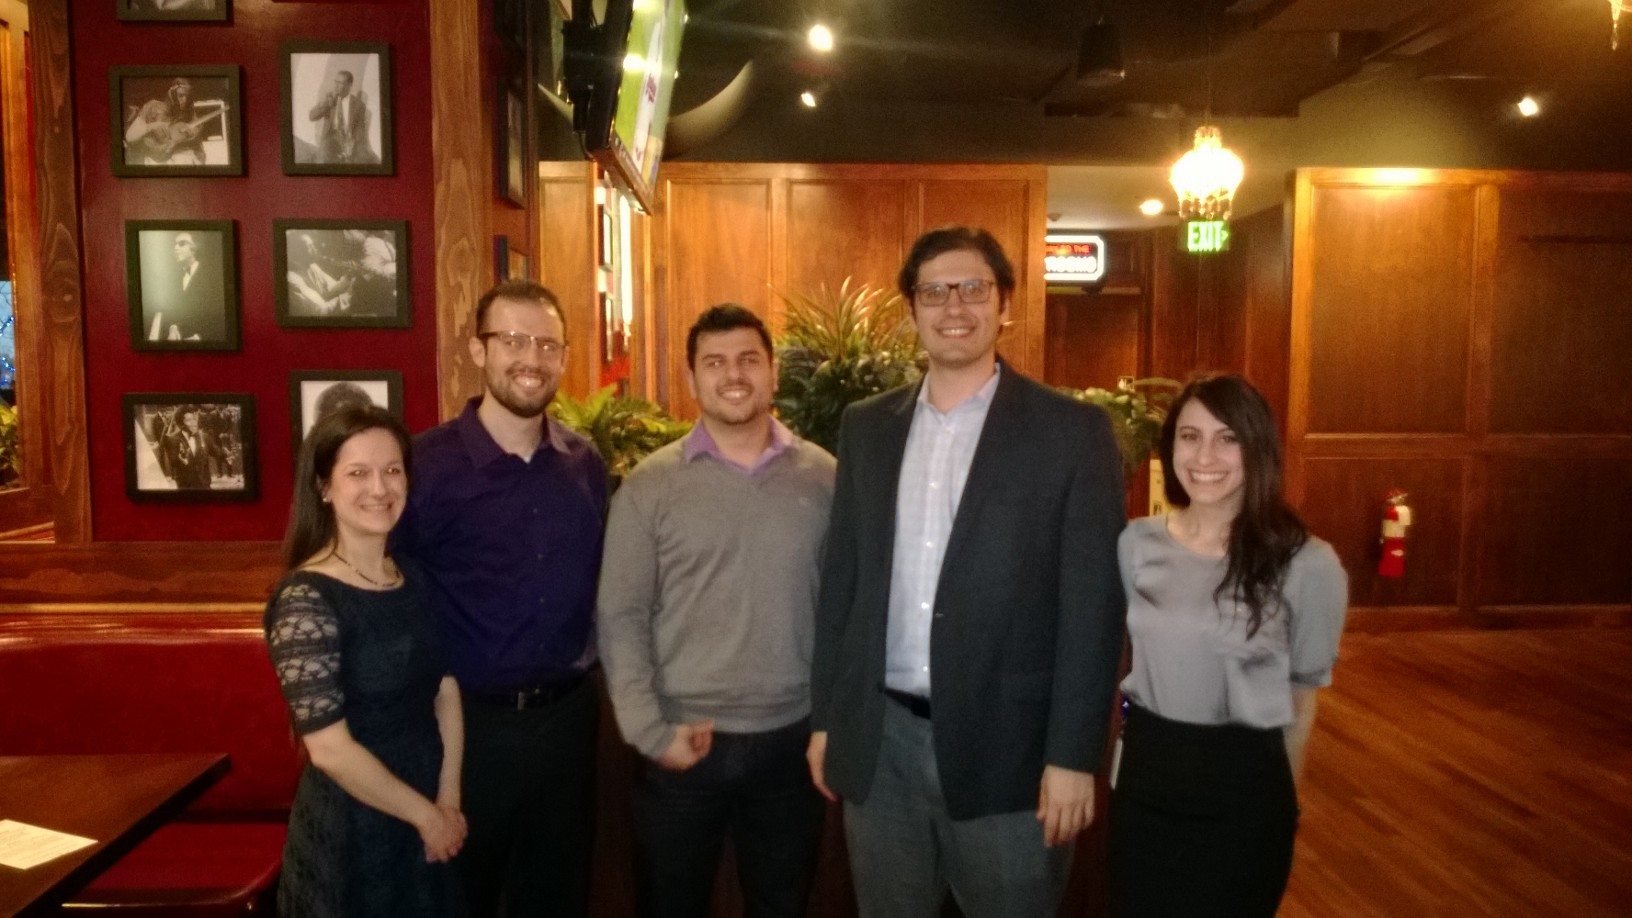 We held our own at the Women's Bar Association's annual trivia event at Hopcat in Royal Oak.